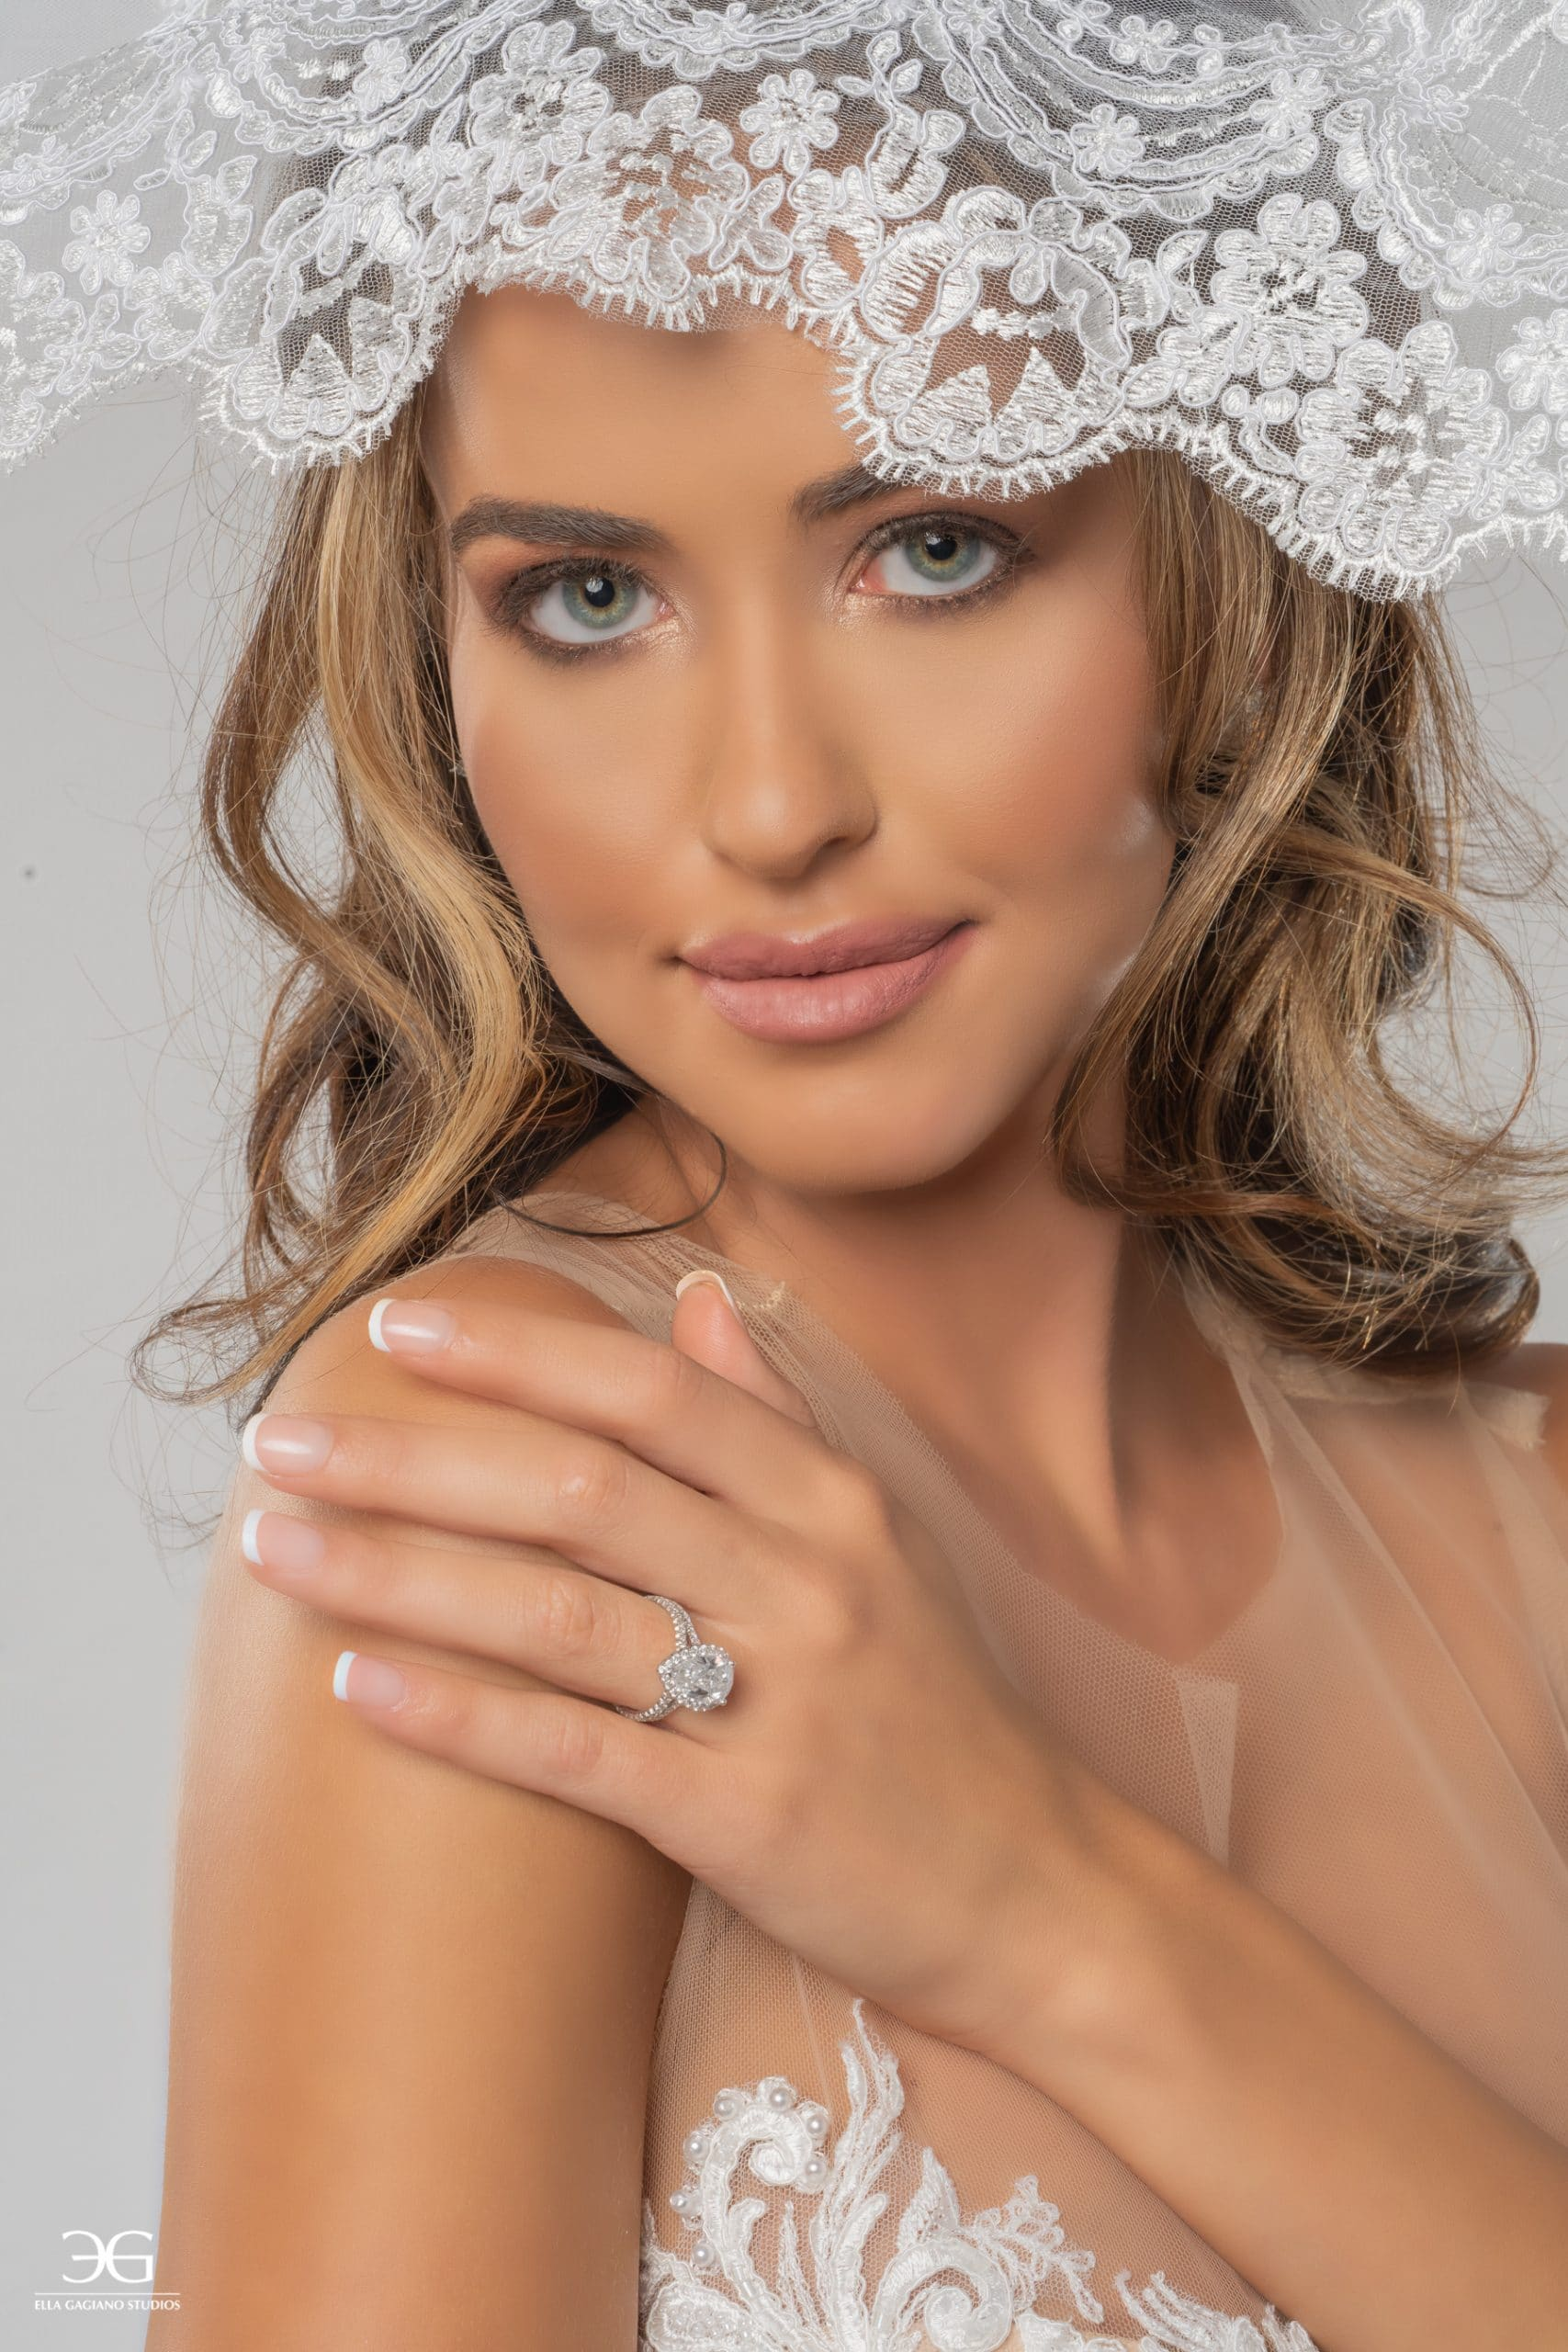 Bridal photoshoot with lacy white dress and diamond ring.